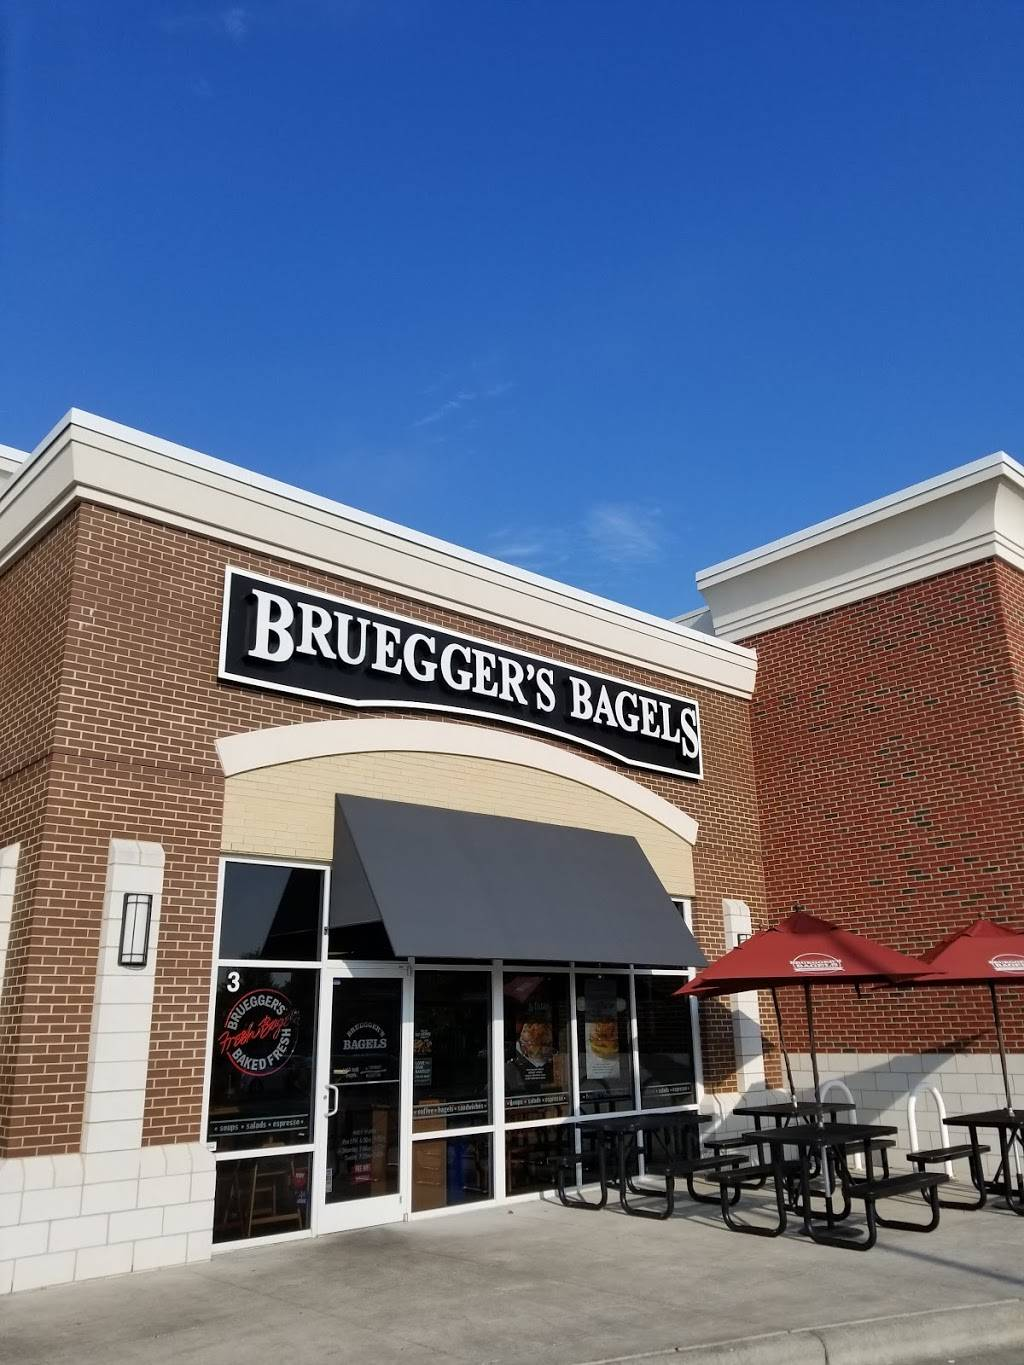 Brueggers Bagels | bakery | 4104 Surles Ct, Durham, NC 27703, USA | 9199416306 OR +1 919-941-6306